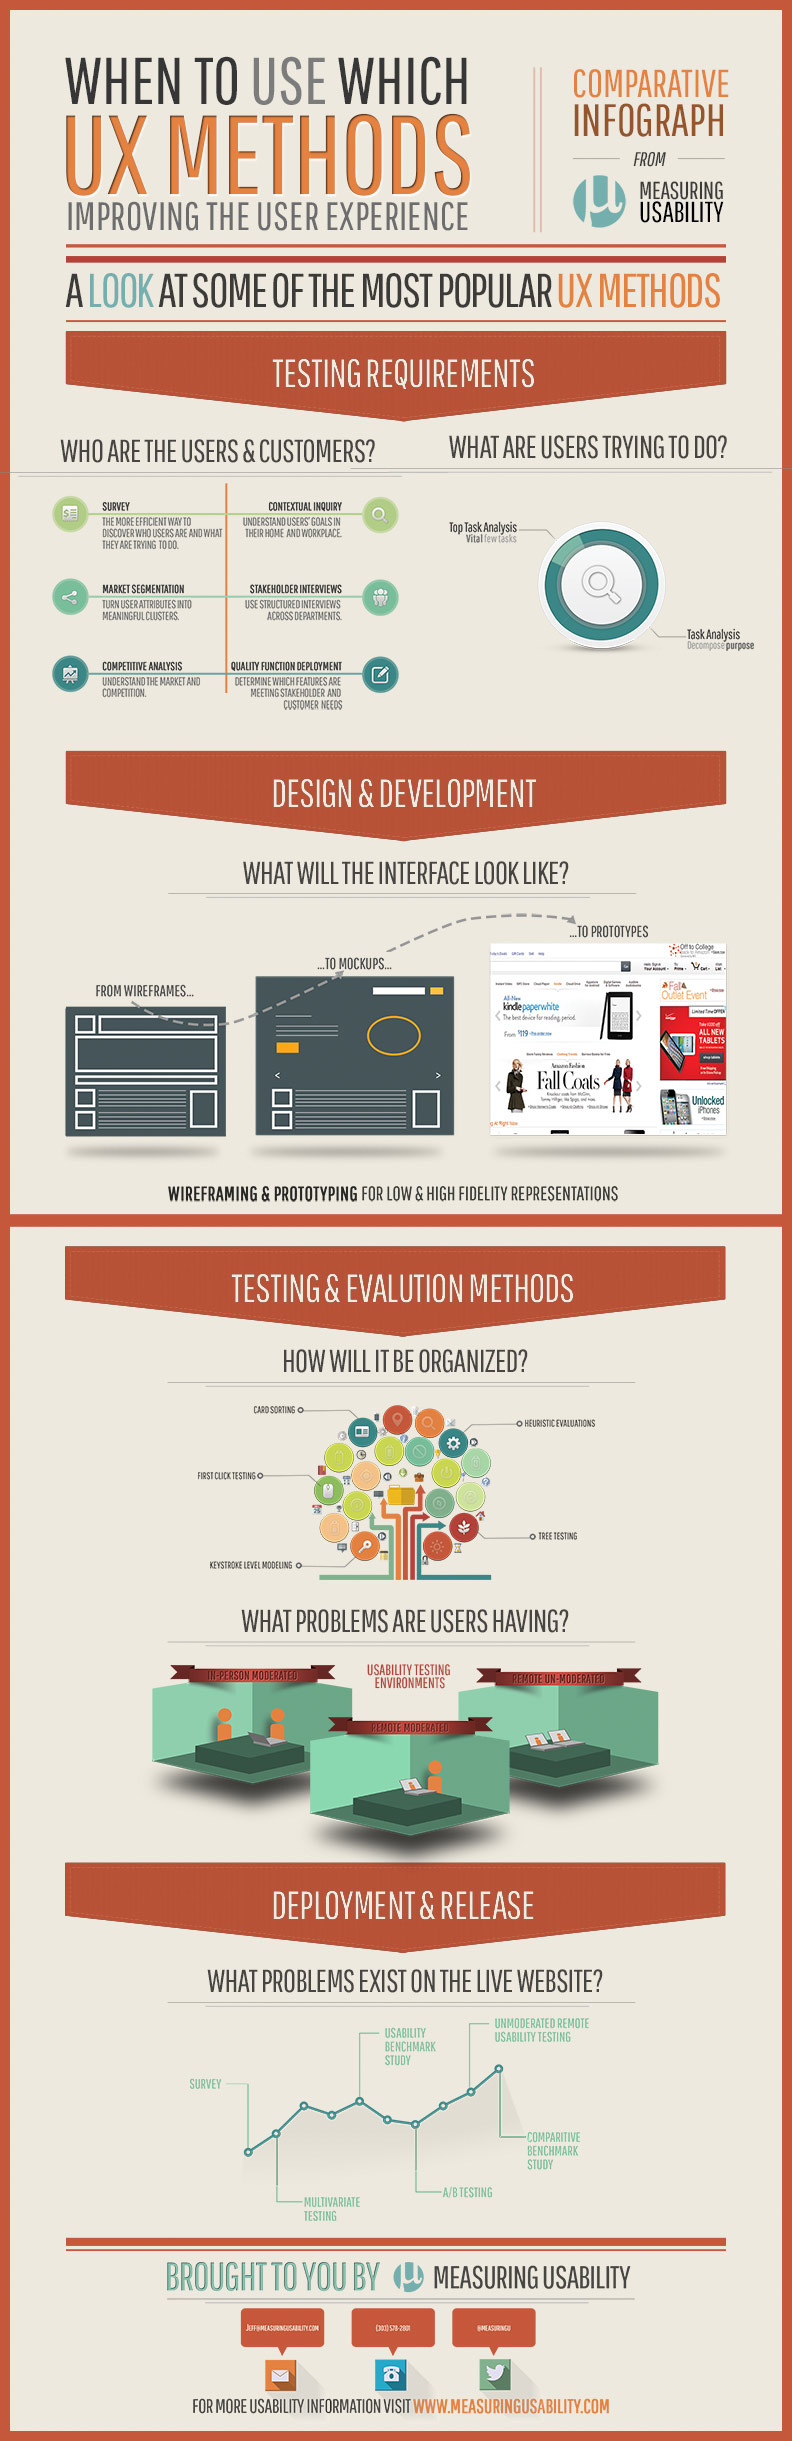 UX methods infographic